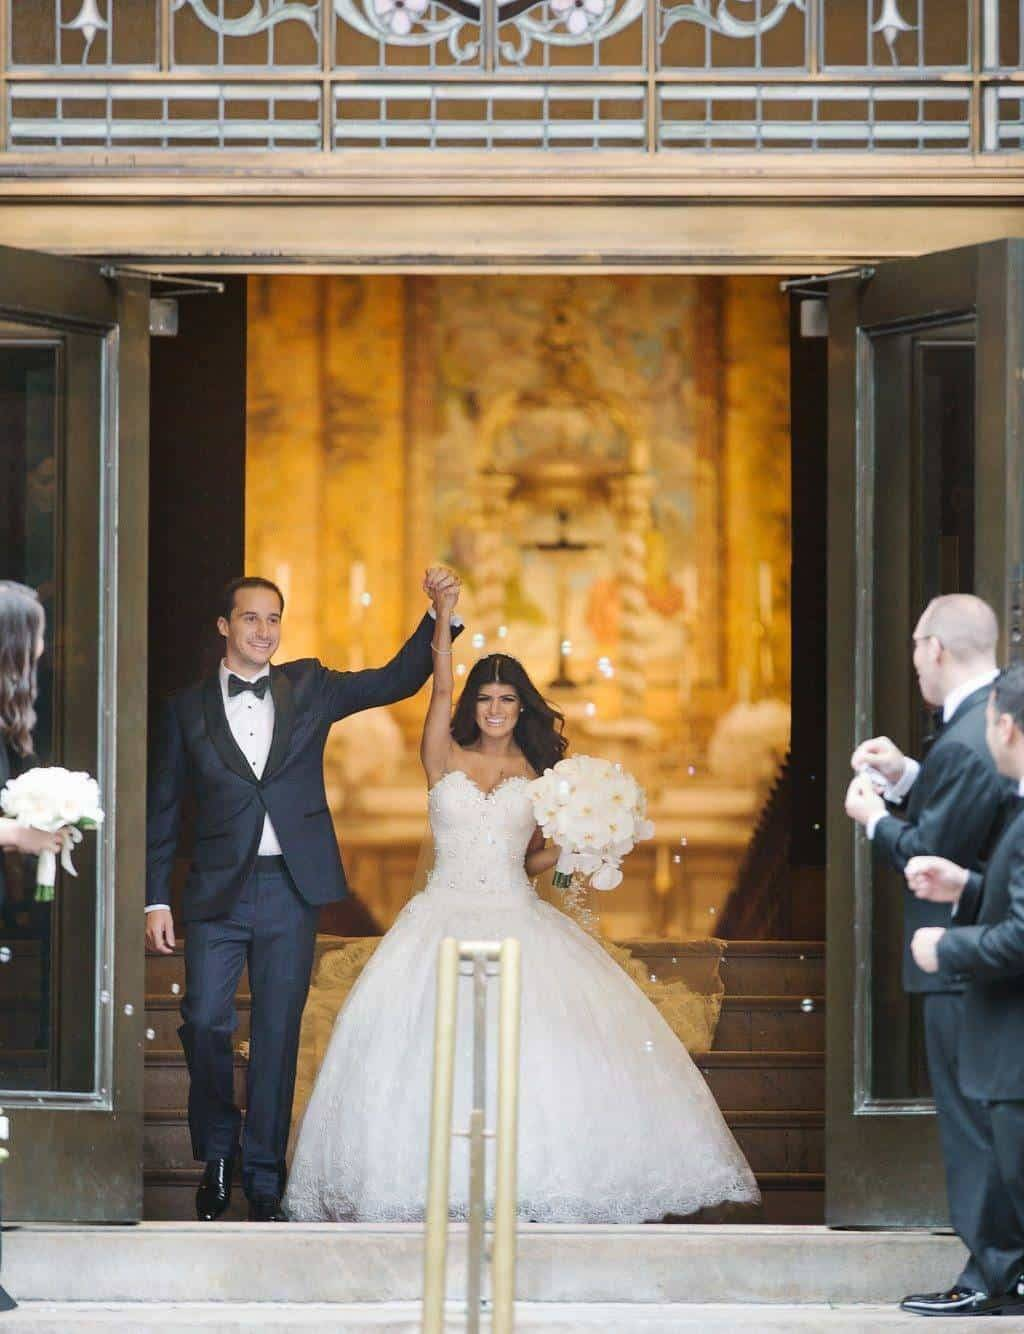 A Grand New York City Wedding Enter the Bride and Groom